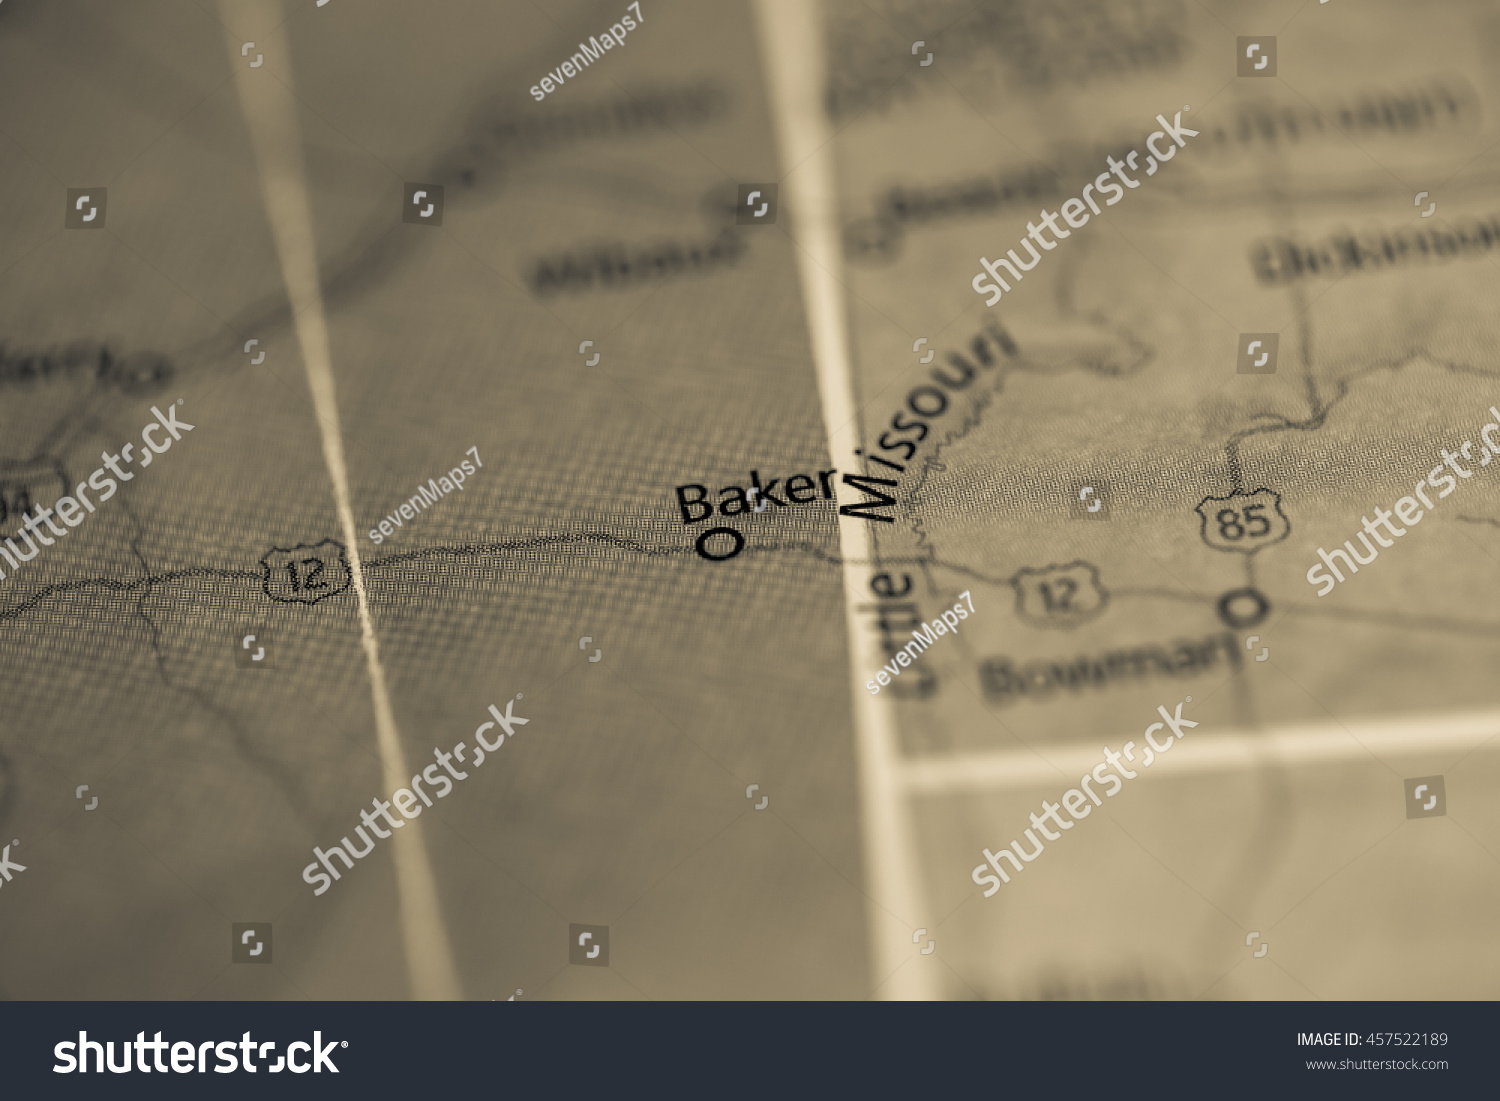 Baker Montana Usa Stock Photo Edit Now 457522189 Shutterstock